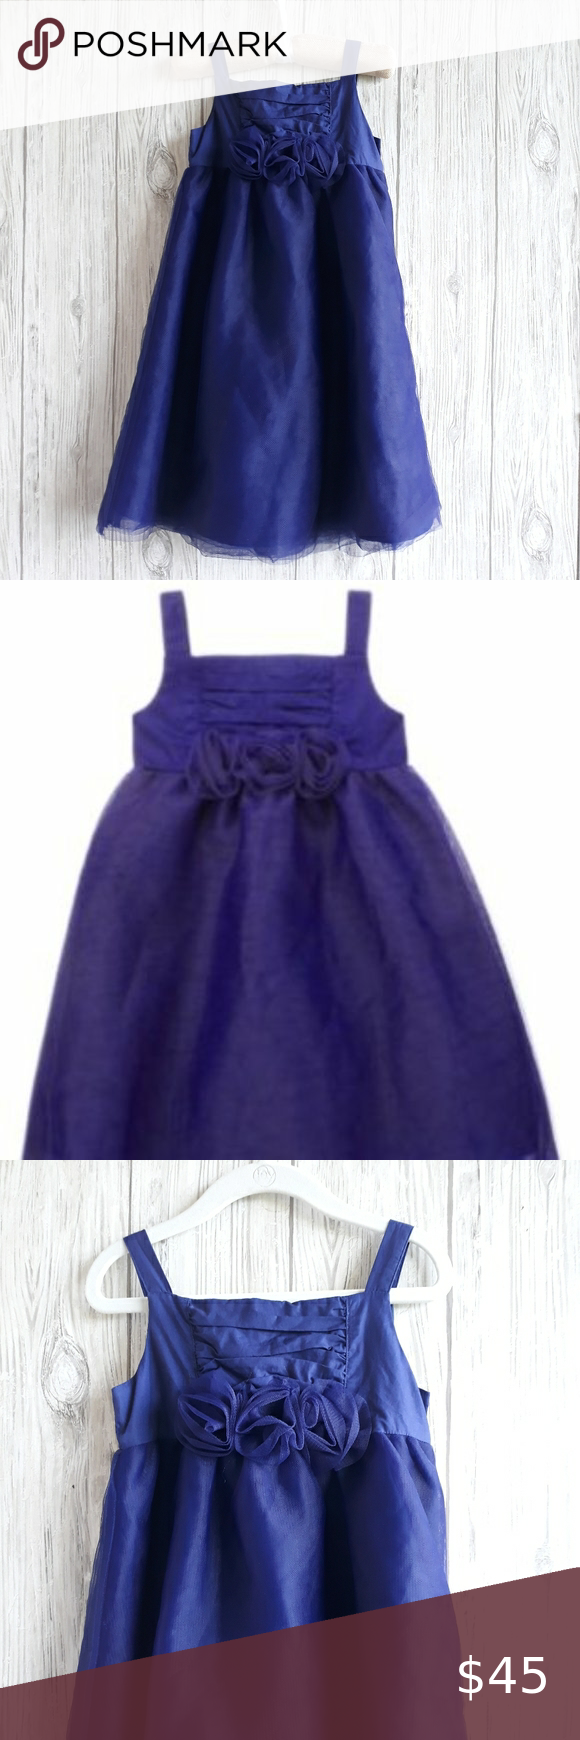 Janie And Jack Enchanted Garden Tulle Dress 4t Janie And Jack Girls Enchanted Garden Purple Tulle Rosette Dress Size 4t Mix Tulle Dress 4t Dress Kids Dresses [ 1740 x 580 Pixel ]